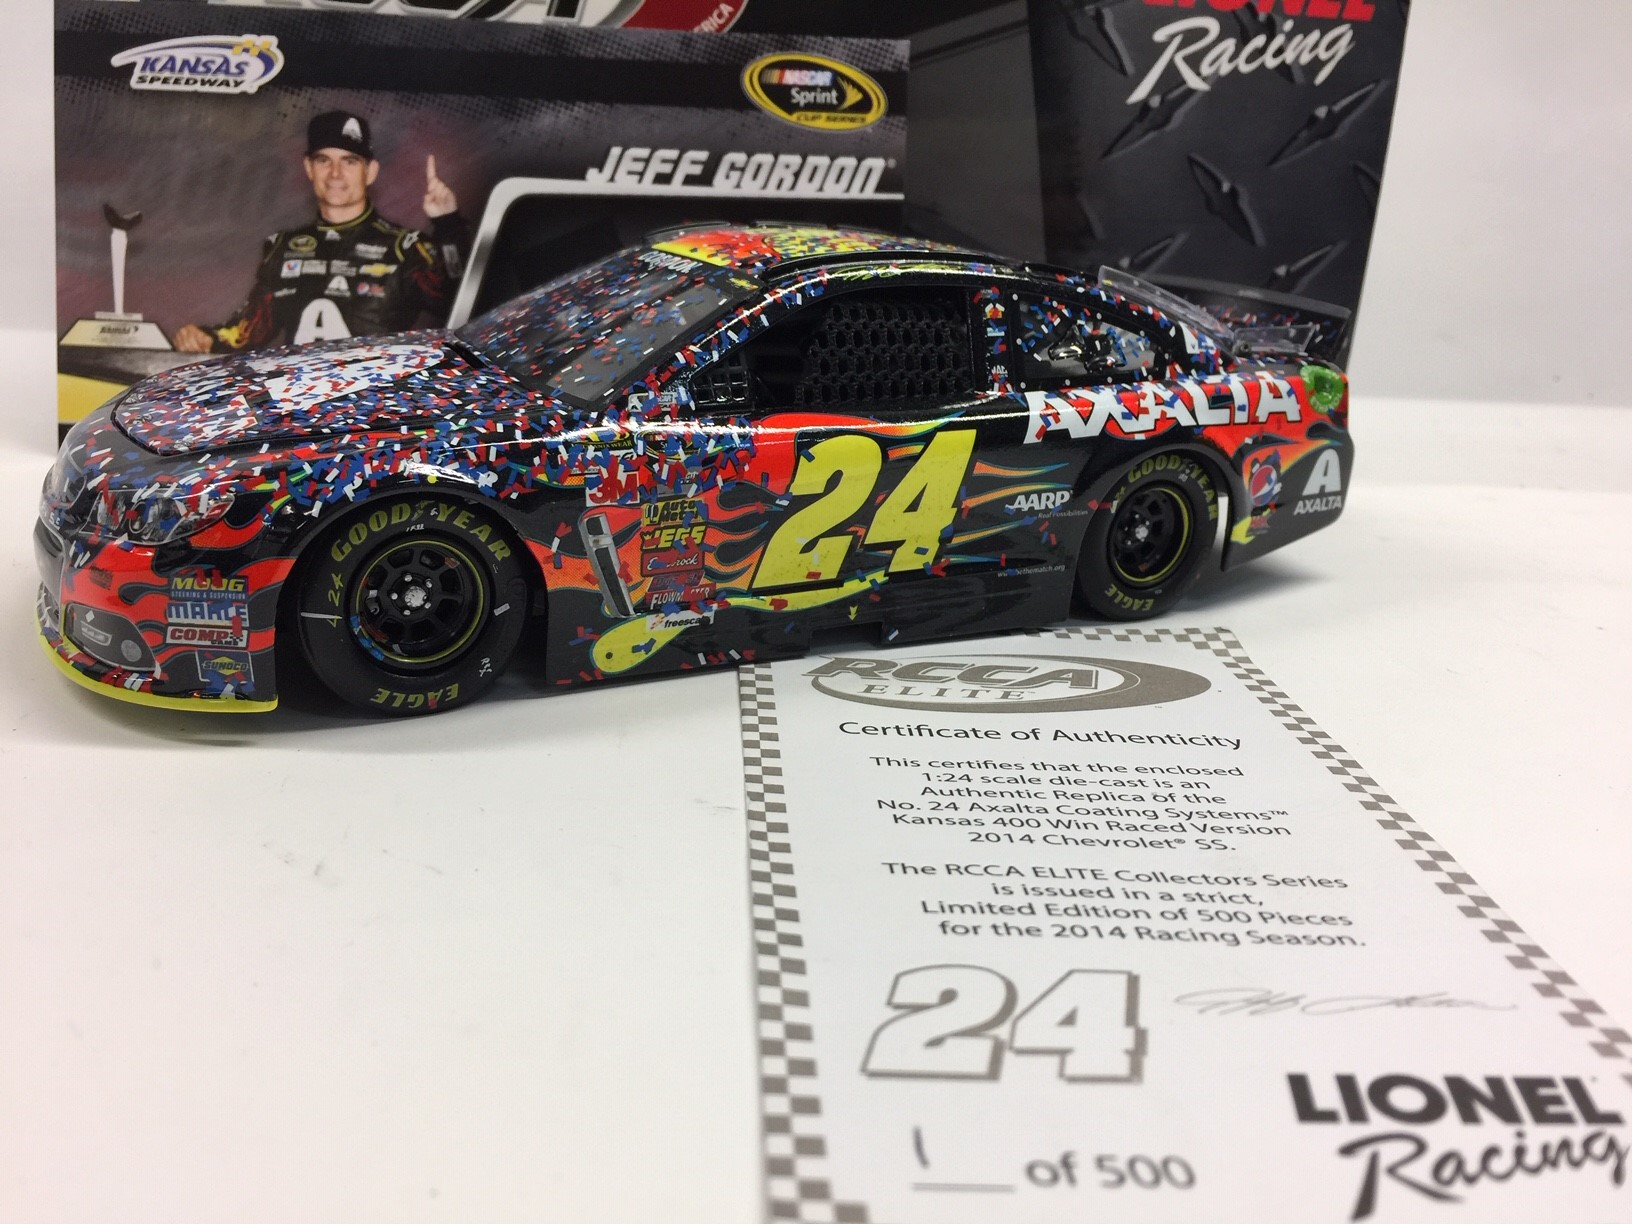 JEFF GORDON 2014 AXALTA KANSAS RACED WIN DIECAST